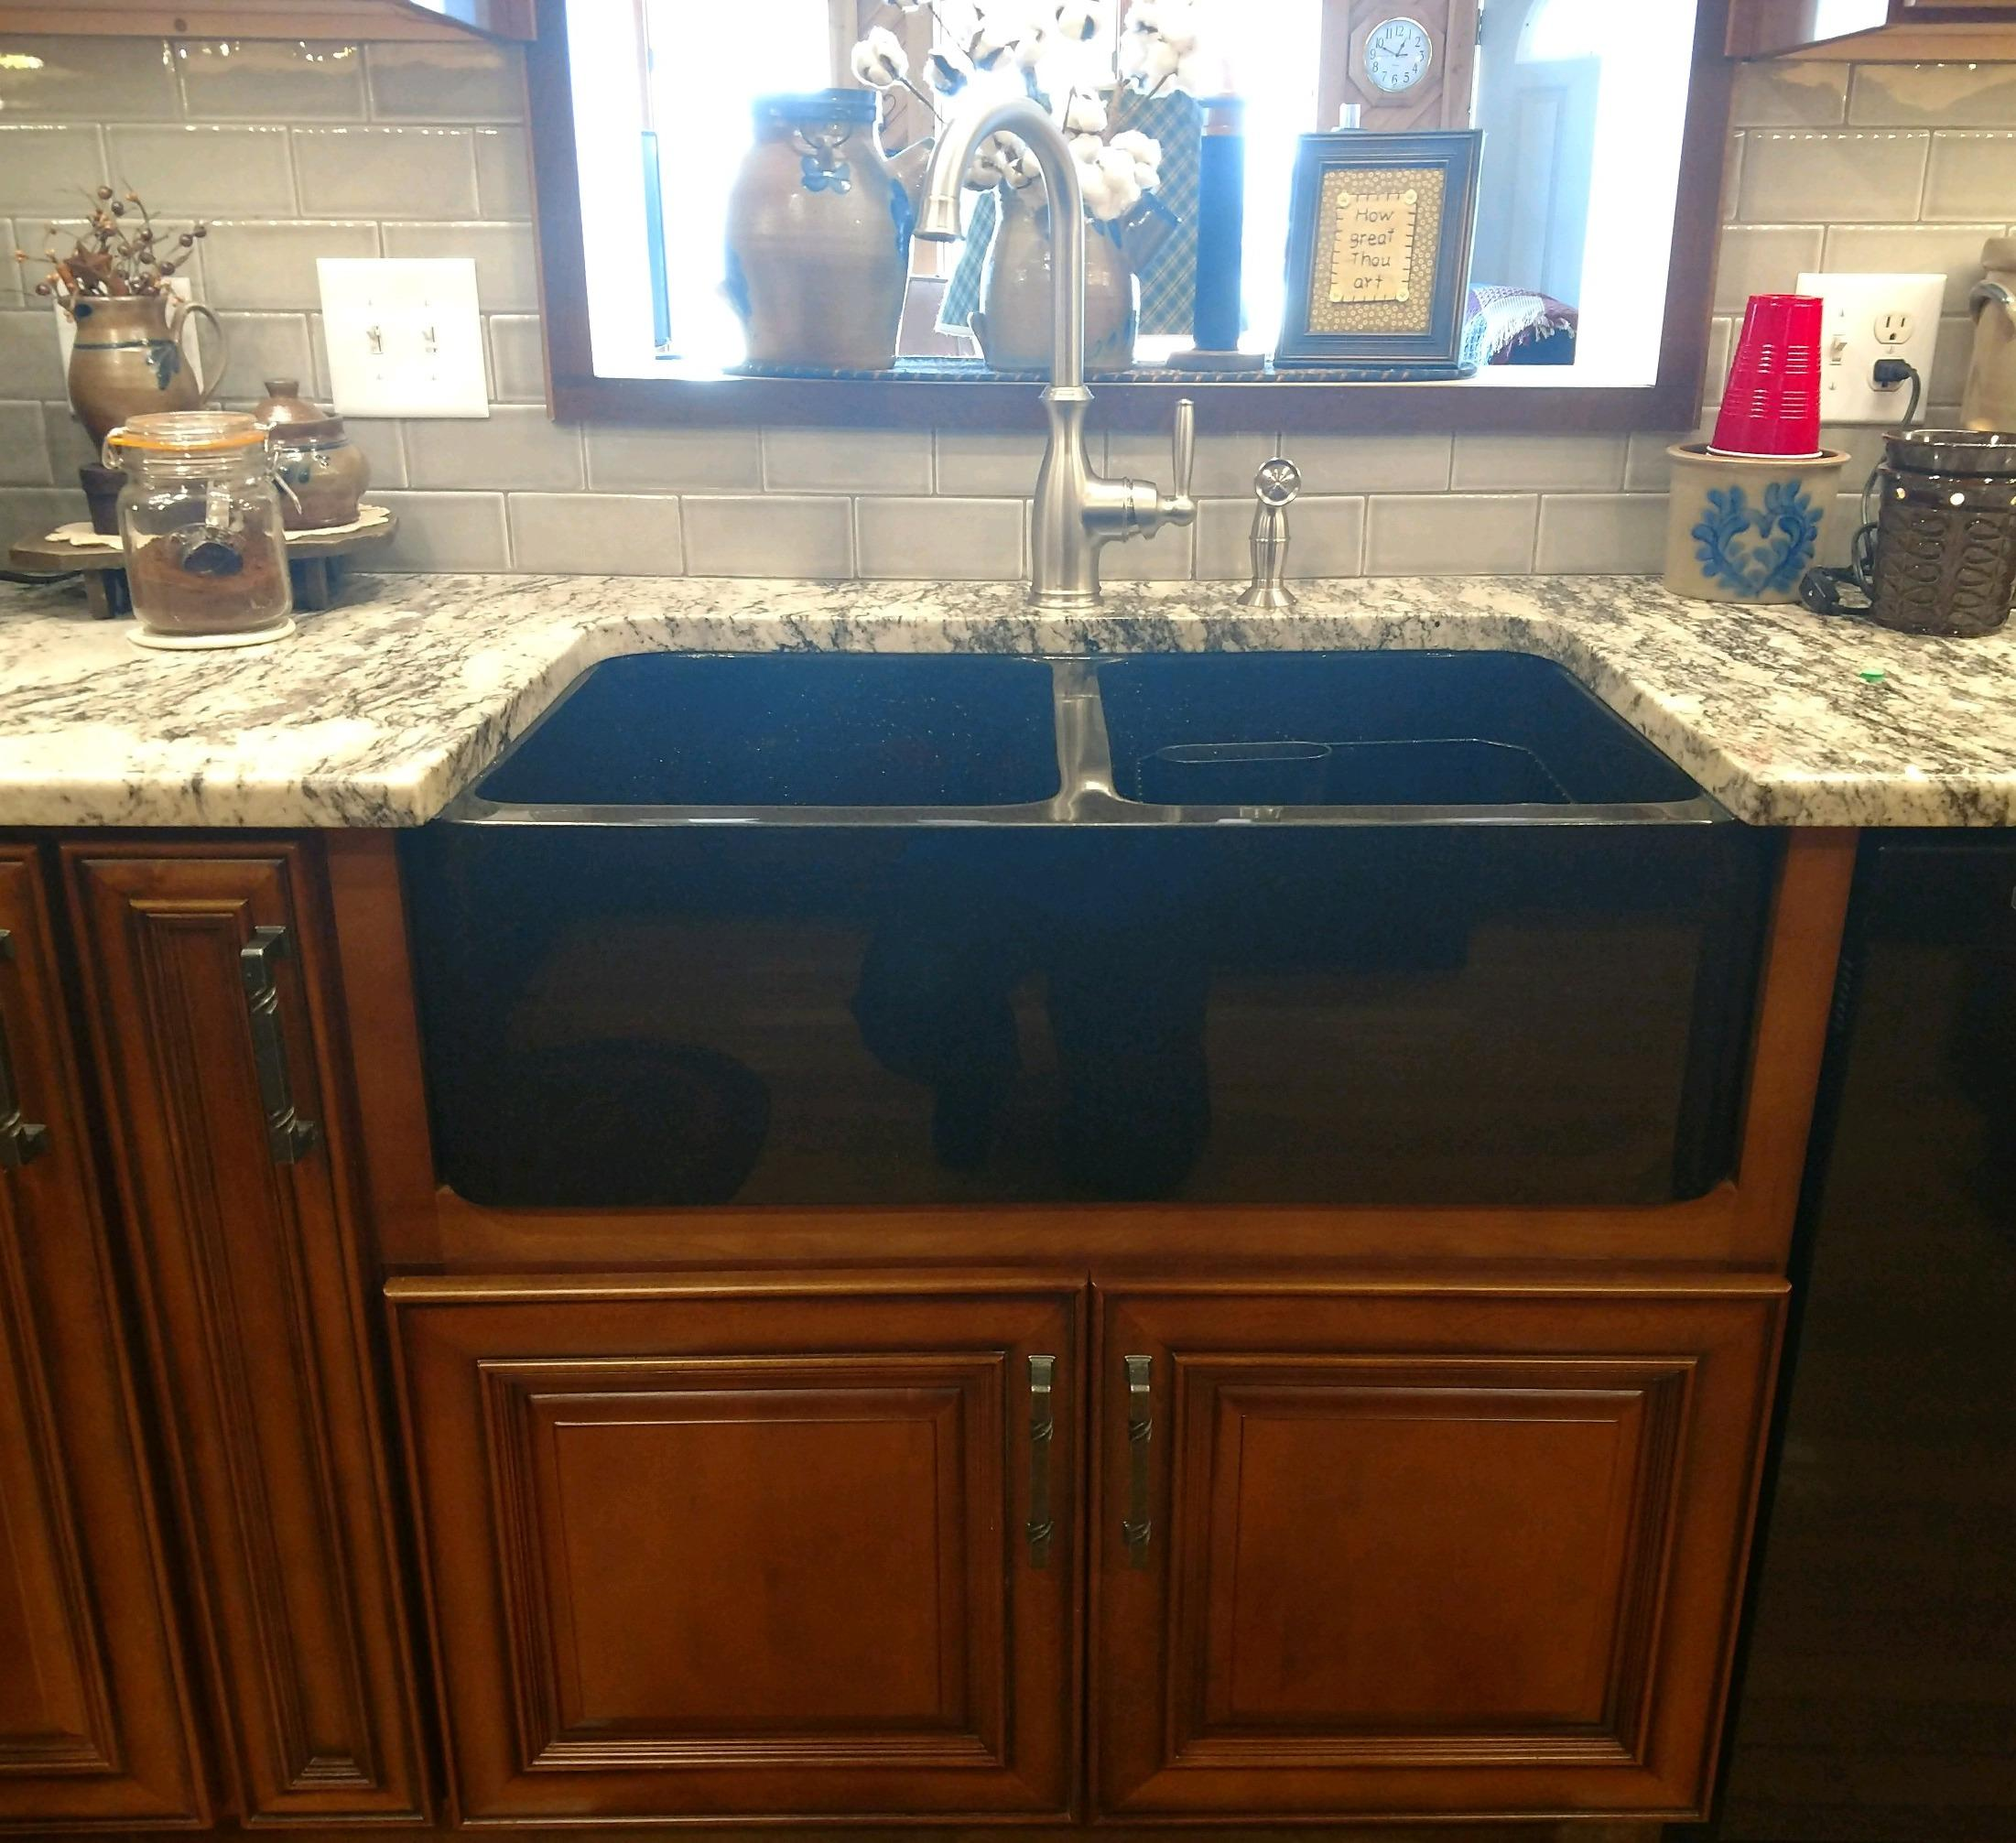 Accurate Upgrades Home Improvements LLC image 2